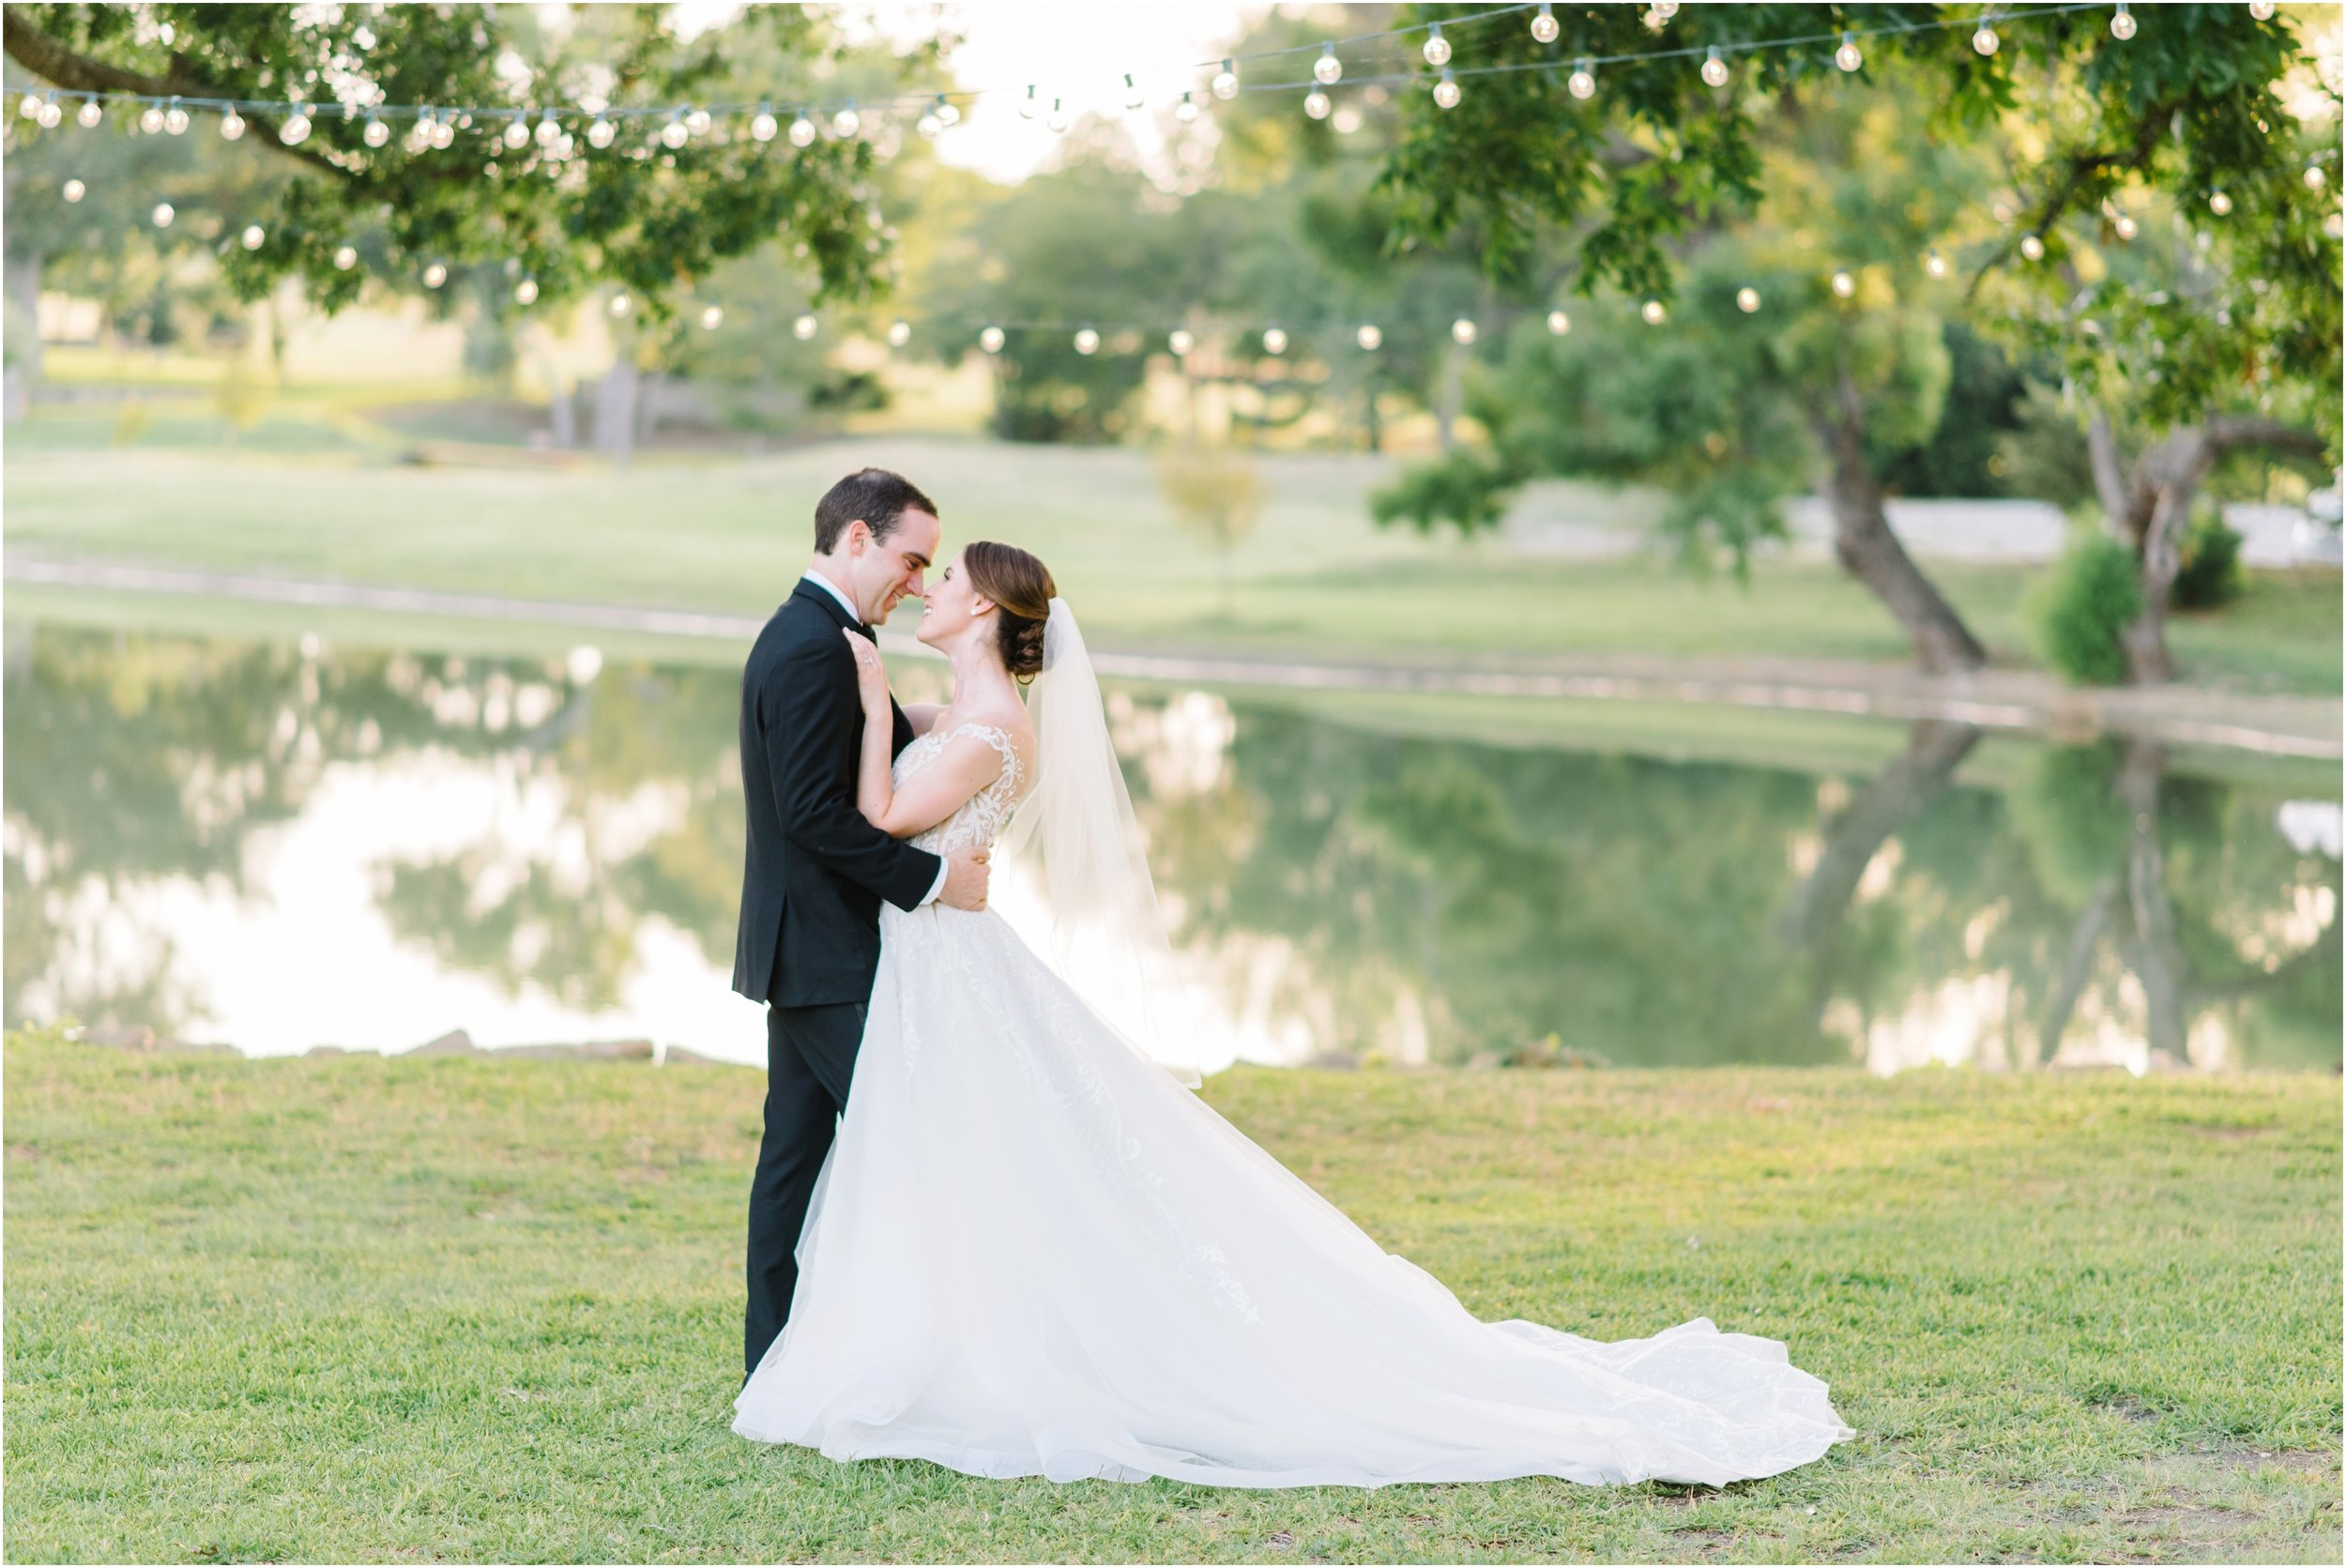 dallasweddingphotographer_fortworthweddingphotographer_texasweddingphotographer_mattandjulieweddings_whiterocklakewedding_KayleighClay_0039.jpg